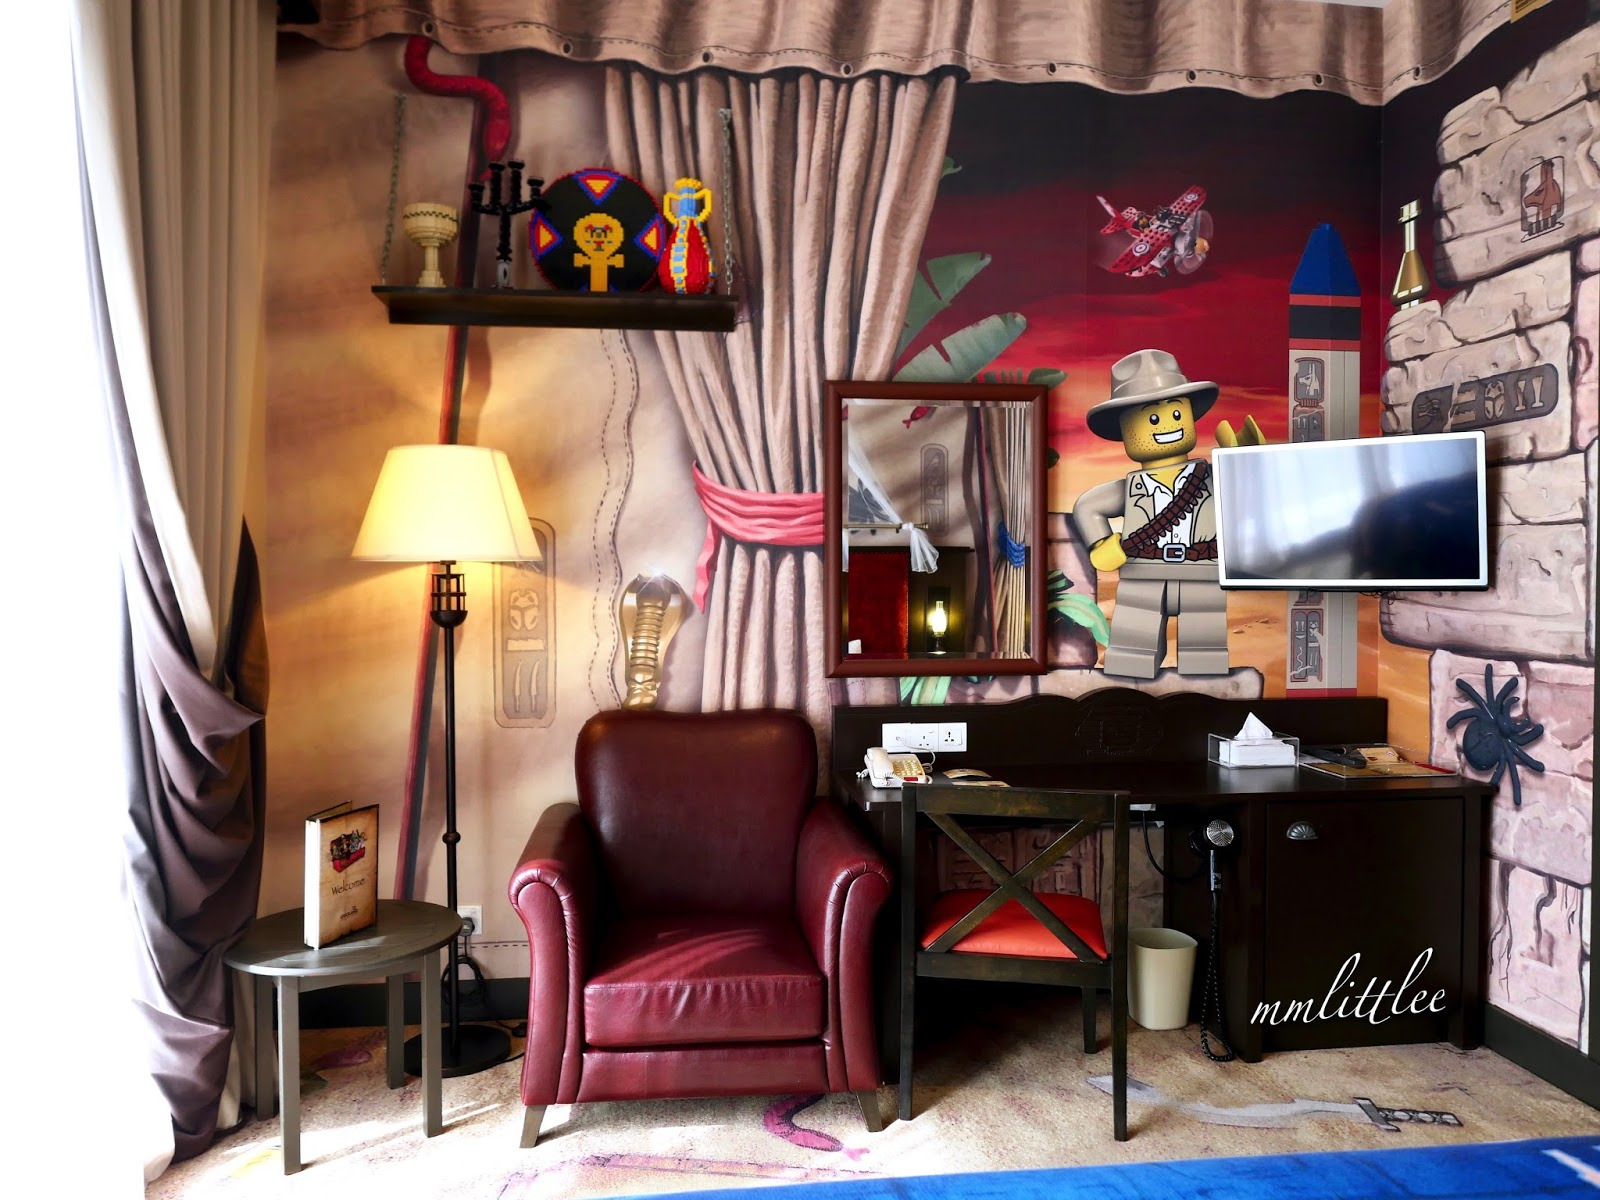 Great Dare to embark in a journey through Egypt with dessert spiders and scarab beetles in the Adventure themed room